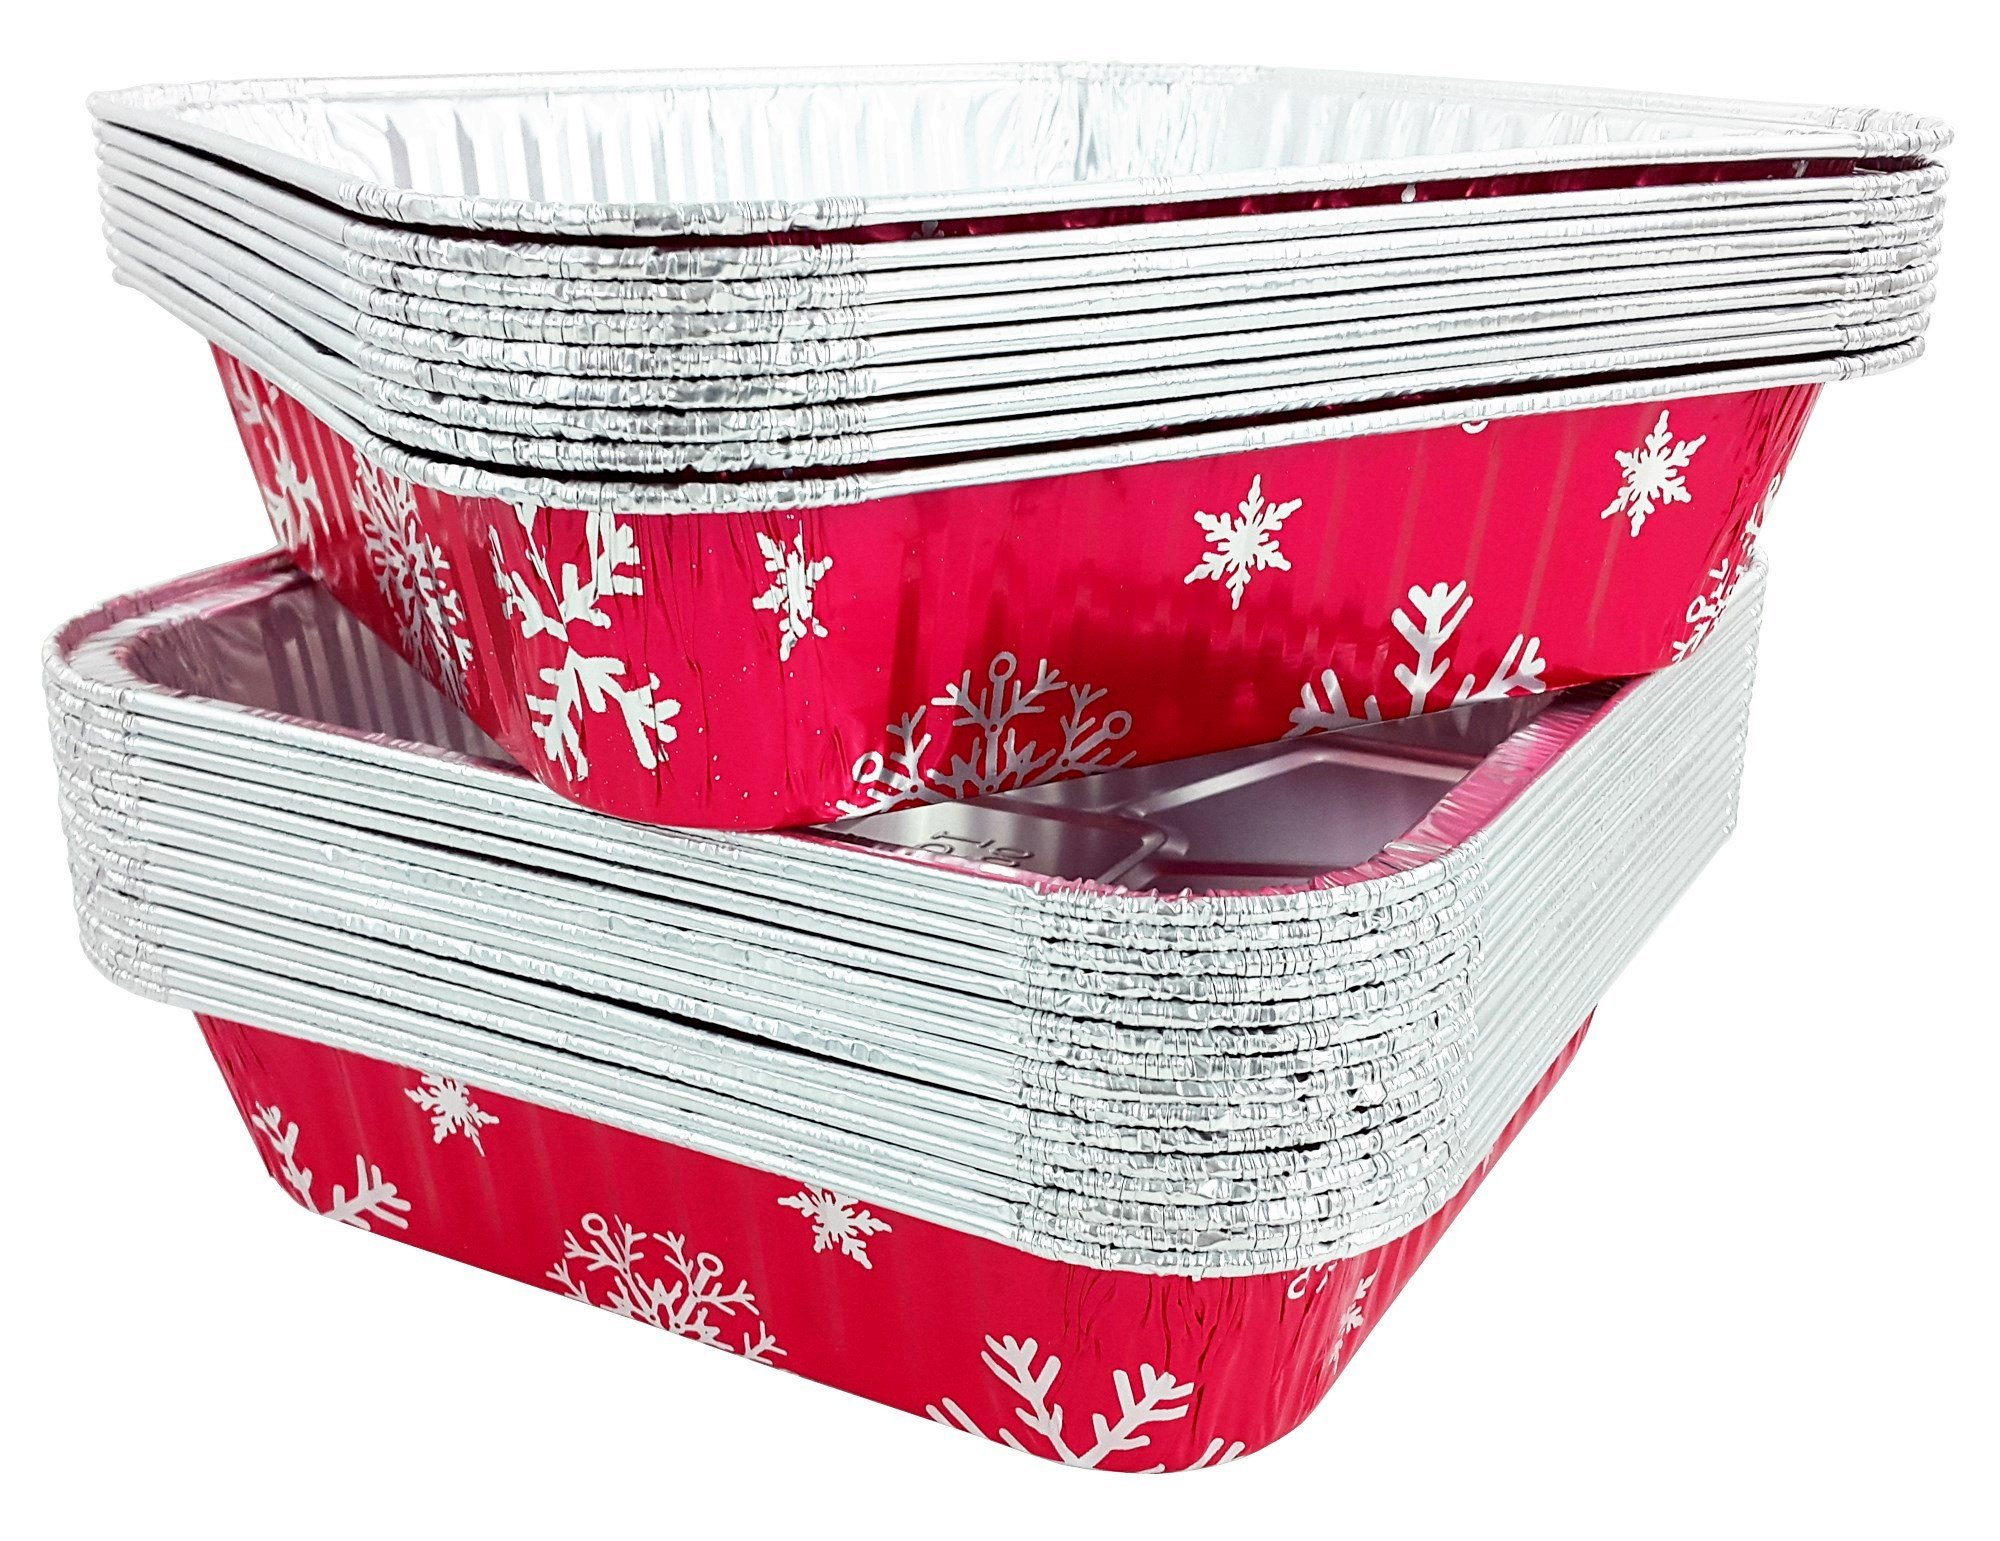 Pactogo Red Holiday Christmas Square Cake Aluminum Foil Pan w/Clear Dome Lid Disposable Baking Tins (Pack of 25 Sets)